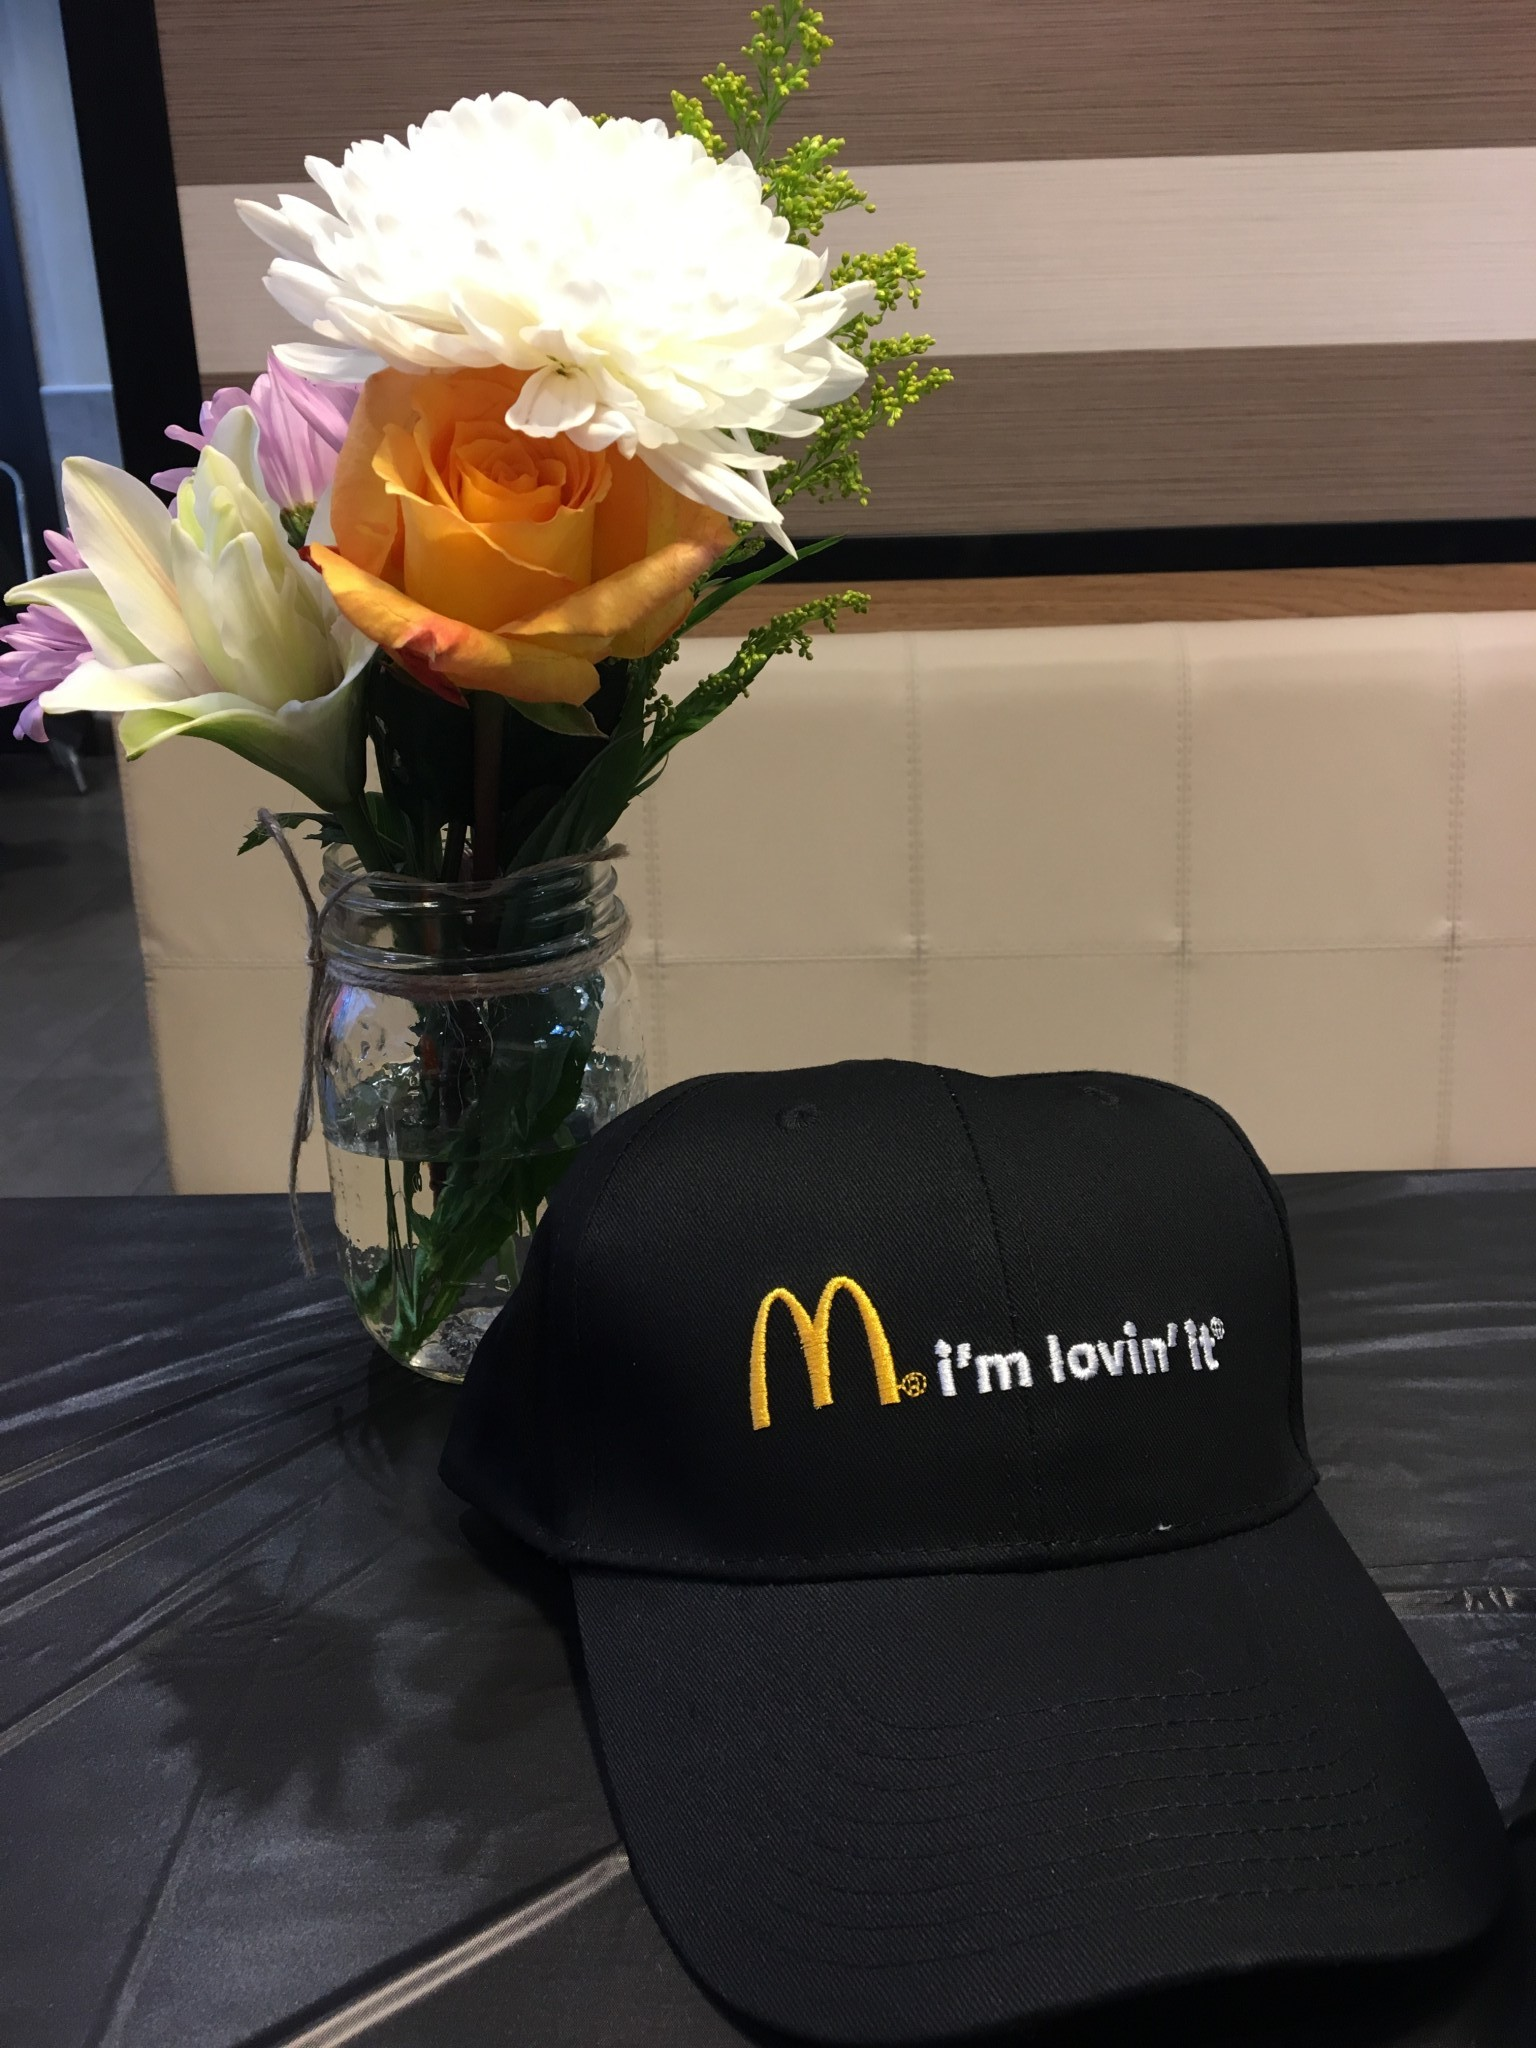 mcdonald's signature crafted, the-alyst.com